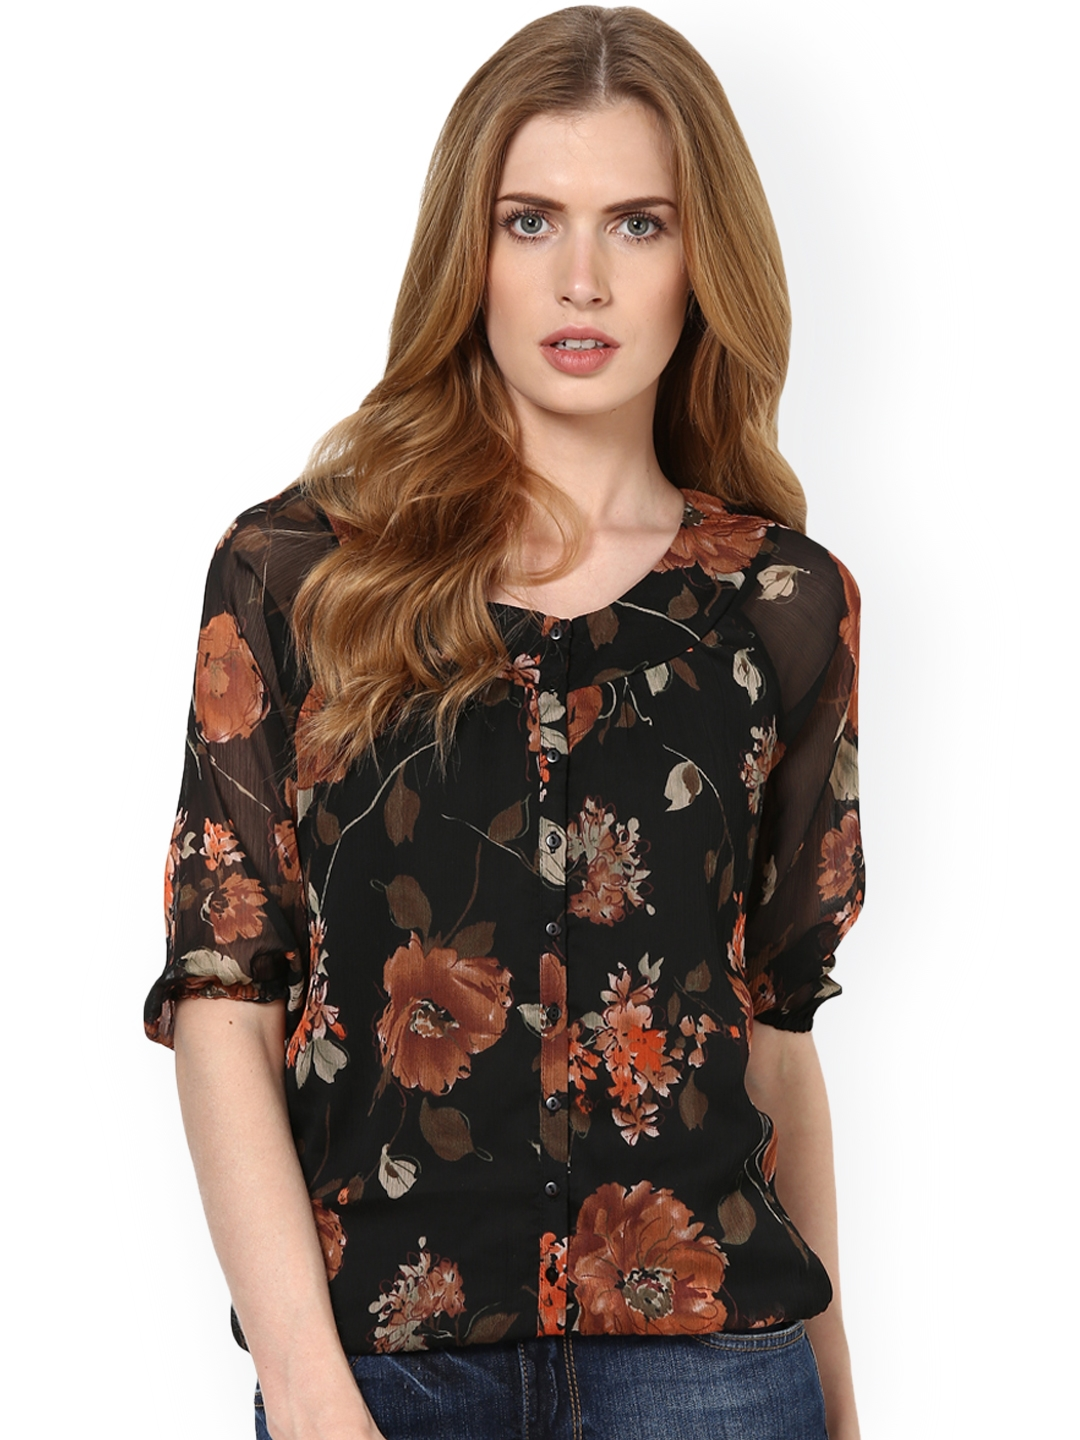 c81c424a089a6 Buy Harpa Women Black Printed Top - Tops for Women 733684